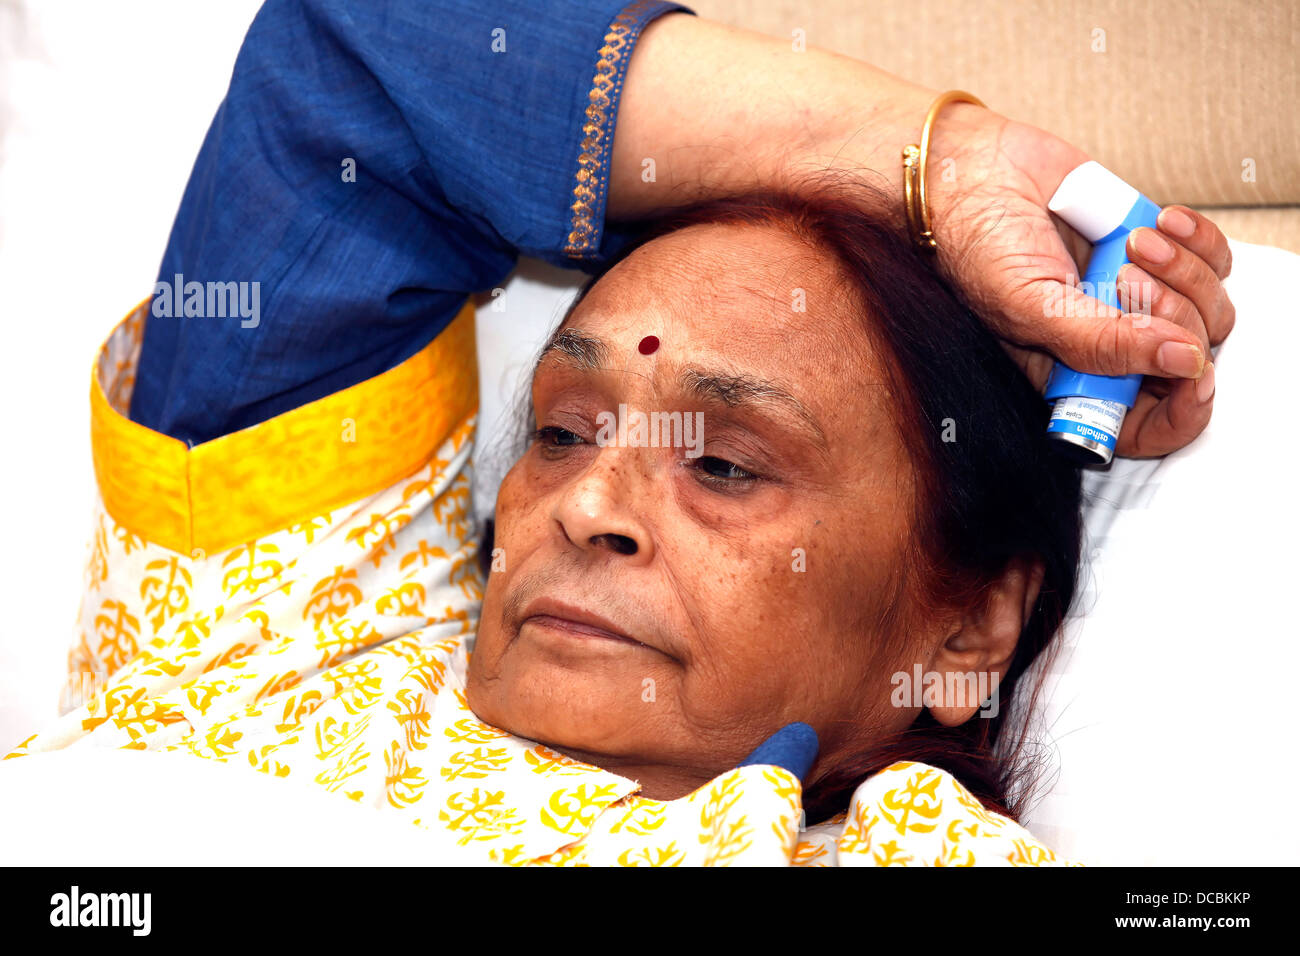 Woman,Lady,elderly,patient,unwell,asthmatic,lying,bed-ridden,inhaler,ailing.respiratory problem,breathing problem,senior - Stock Image